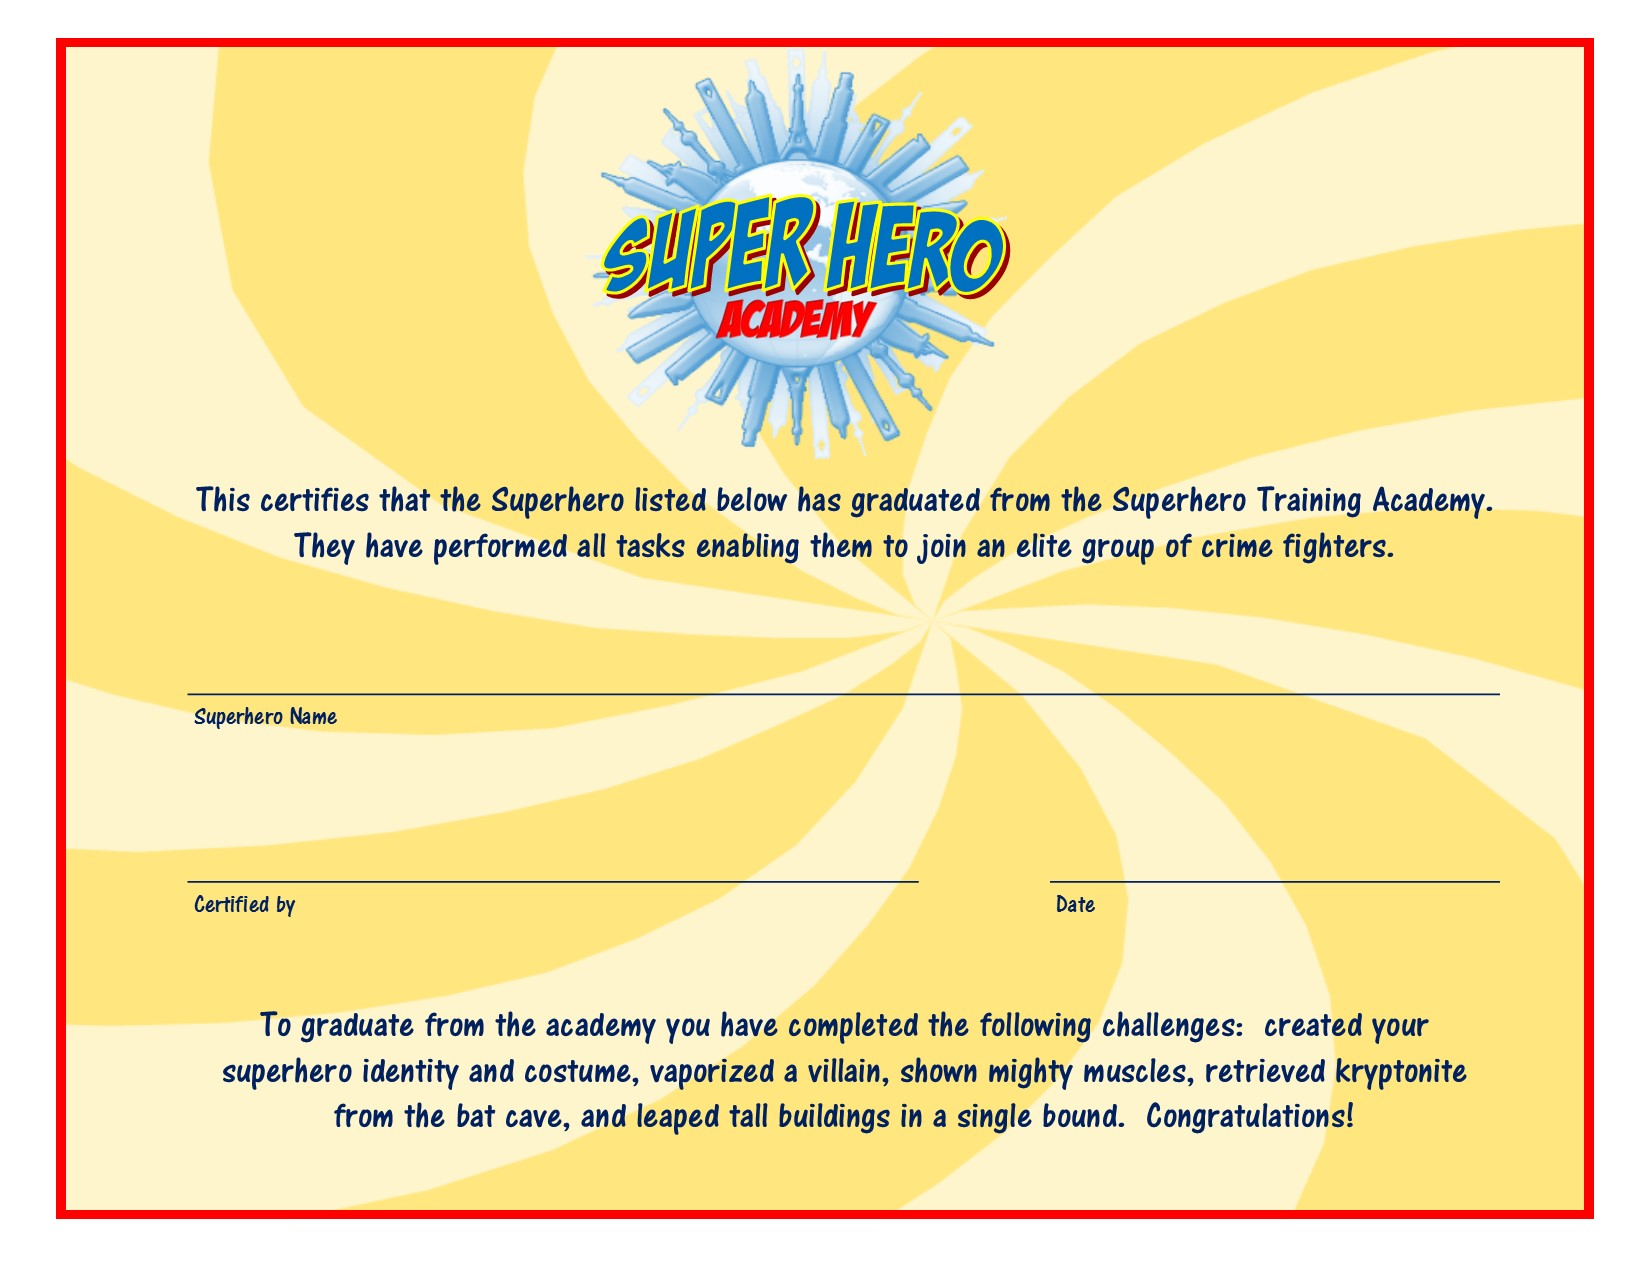 superhero academy: birthday party ideas 4 kids - dsm4kids